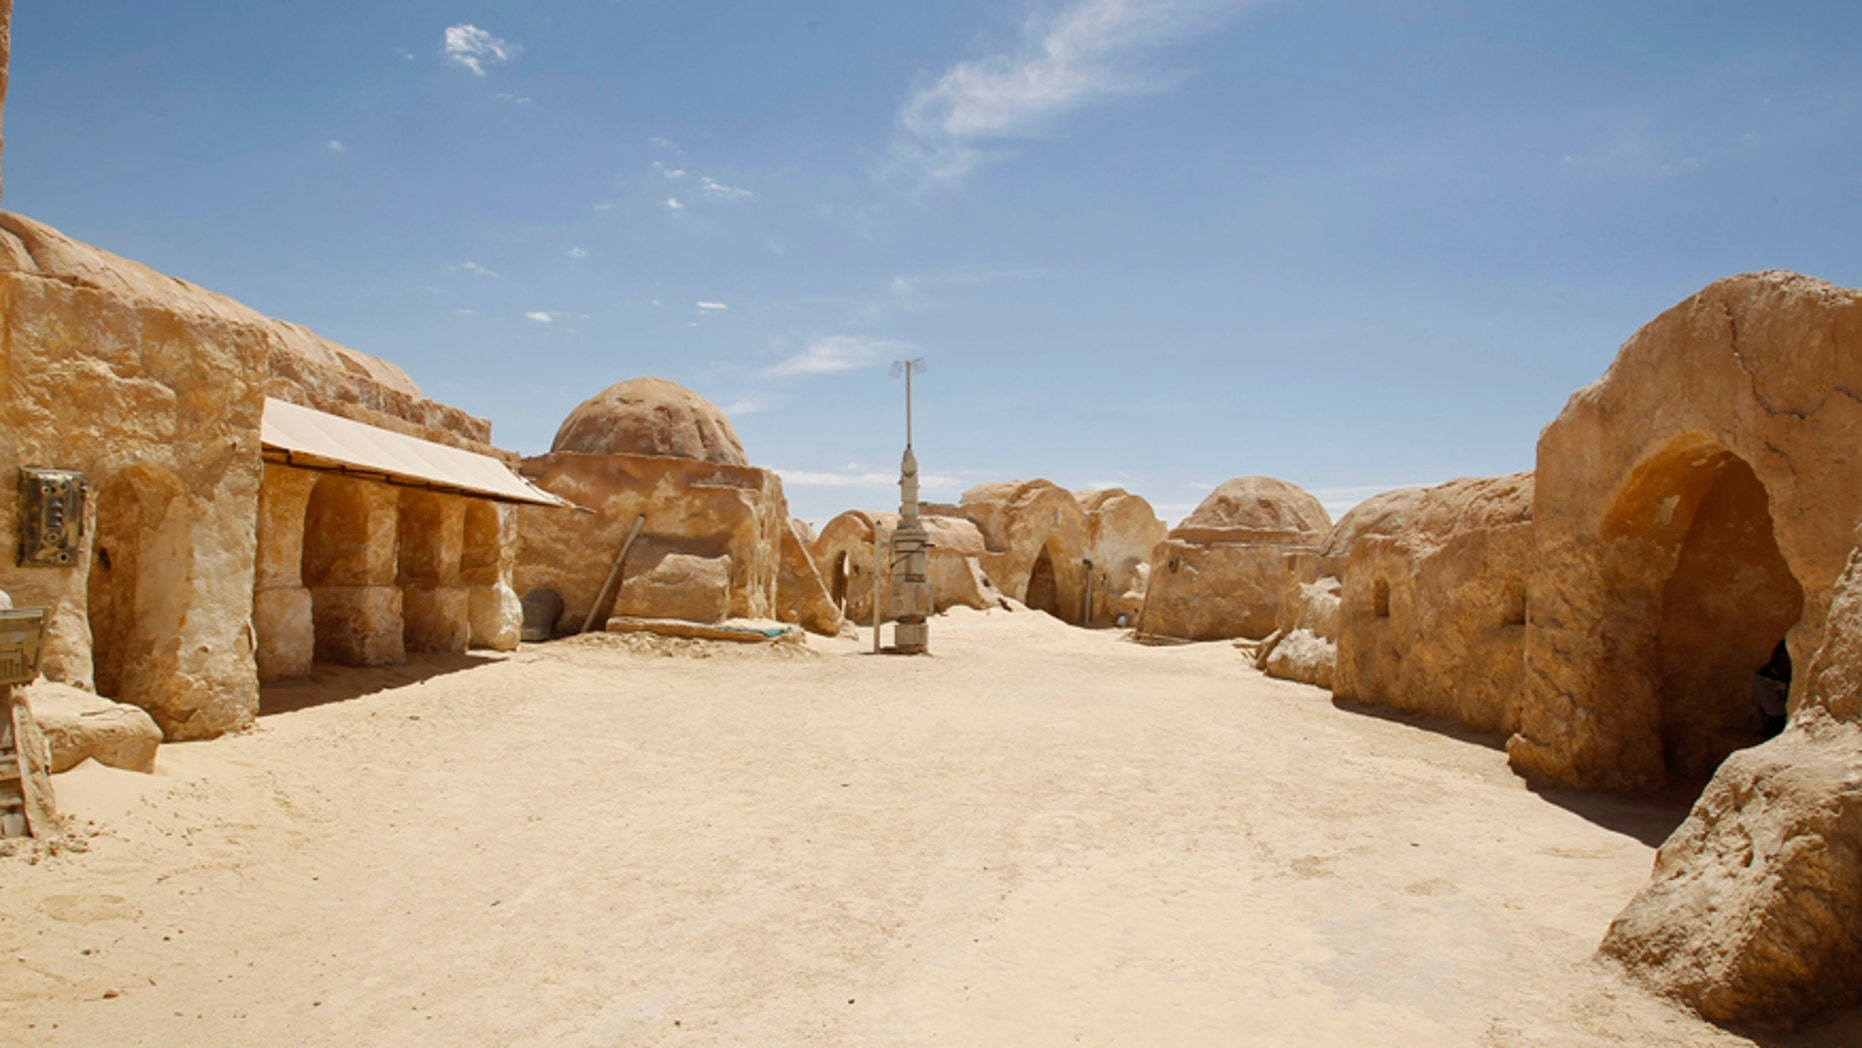 A view of the Star Wars movie set is seen at Ong Jmal, in Nefta, May 3, 2014.